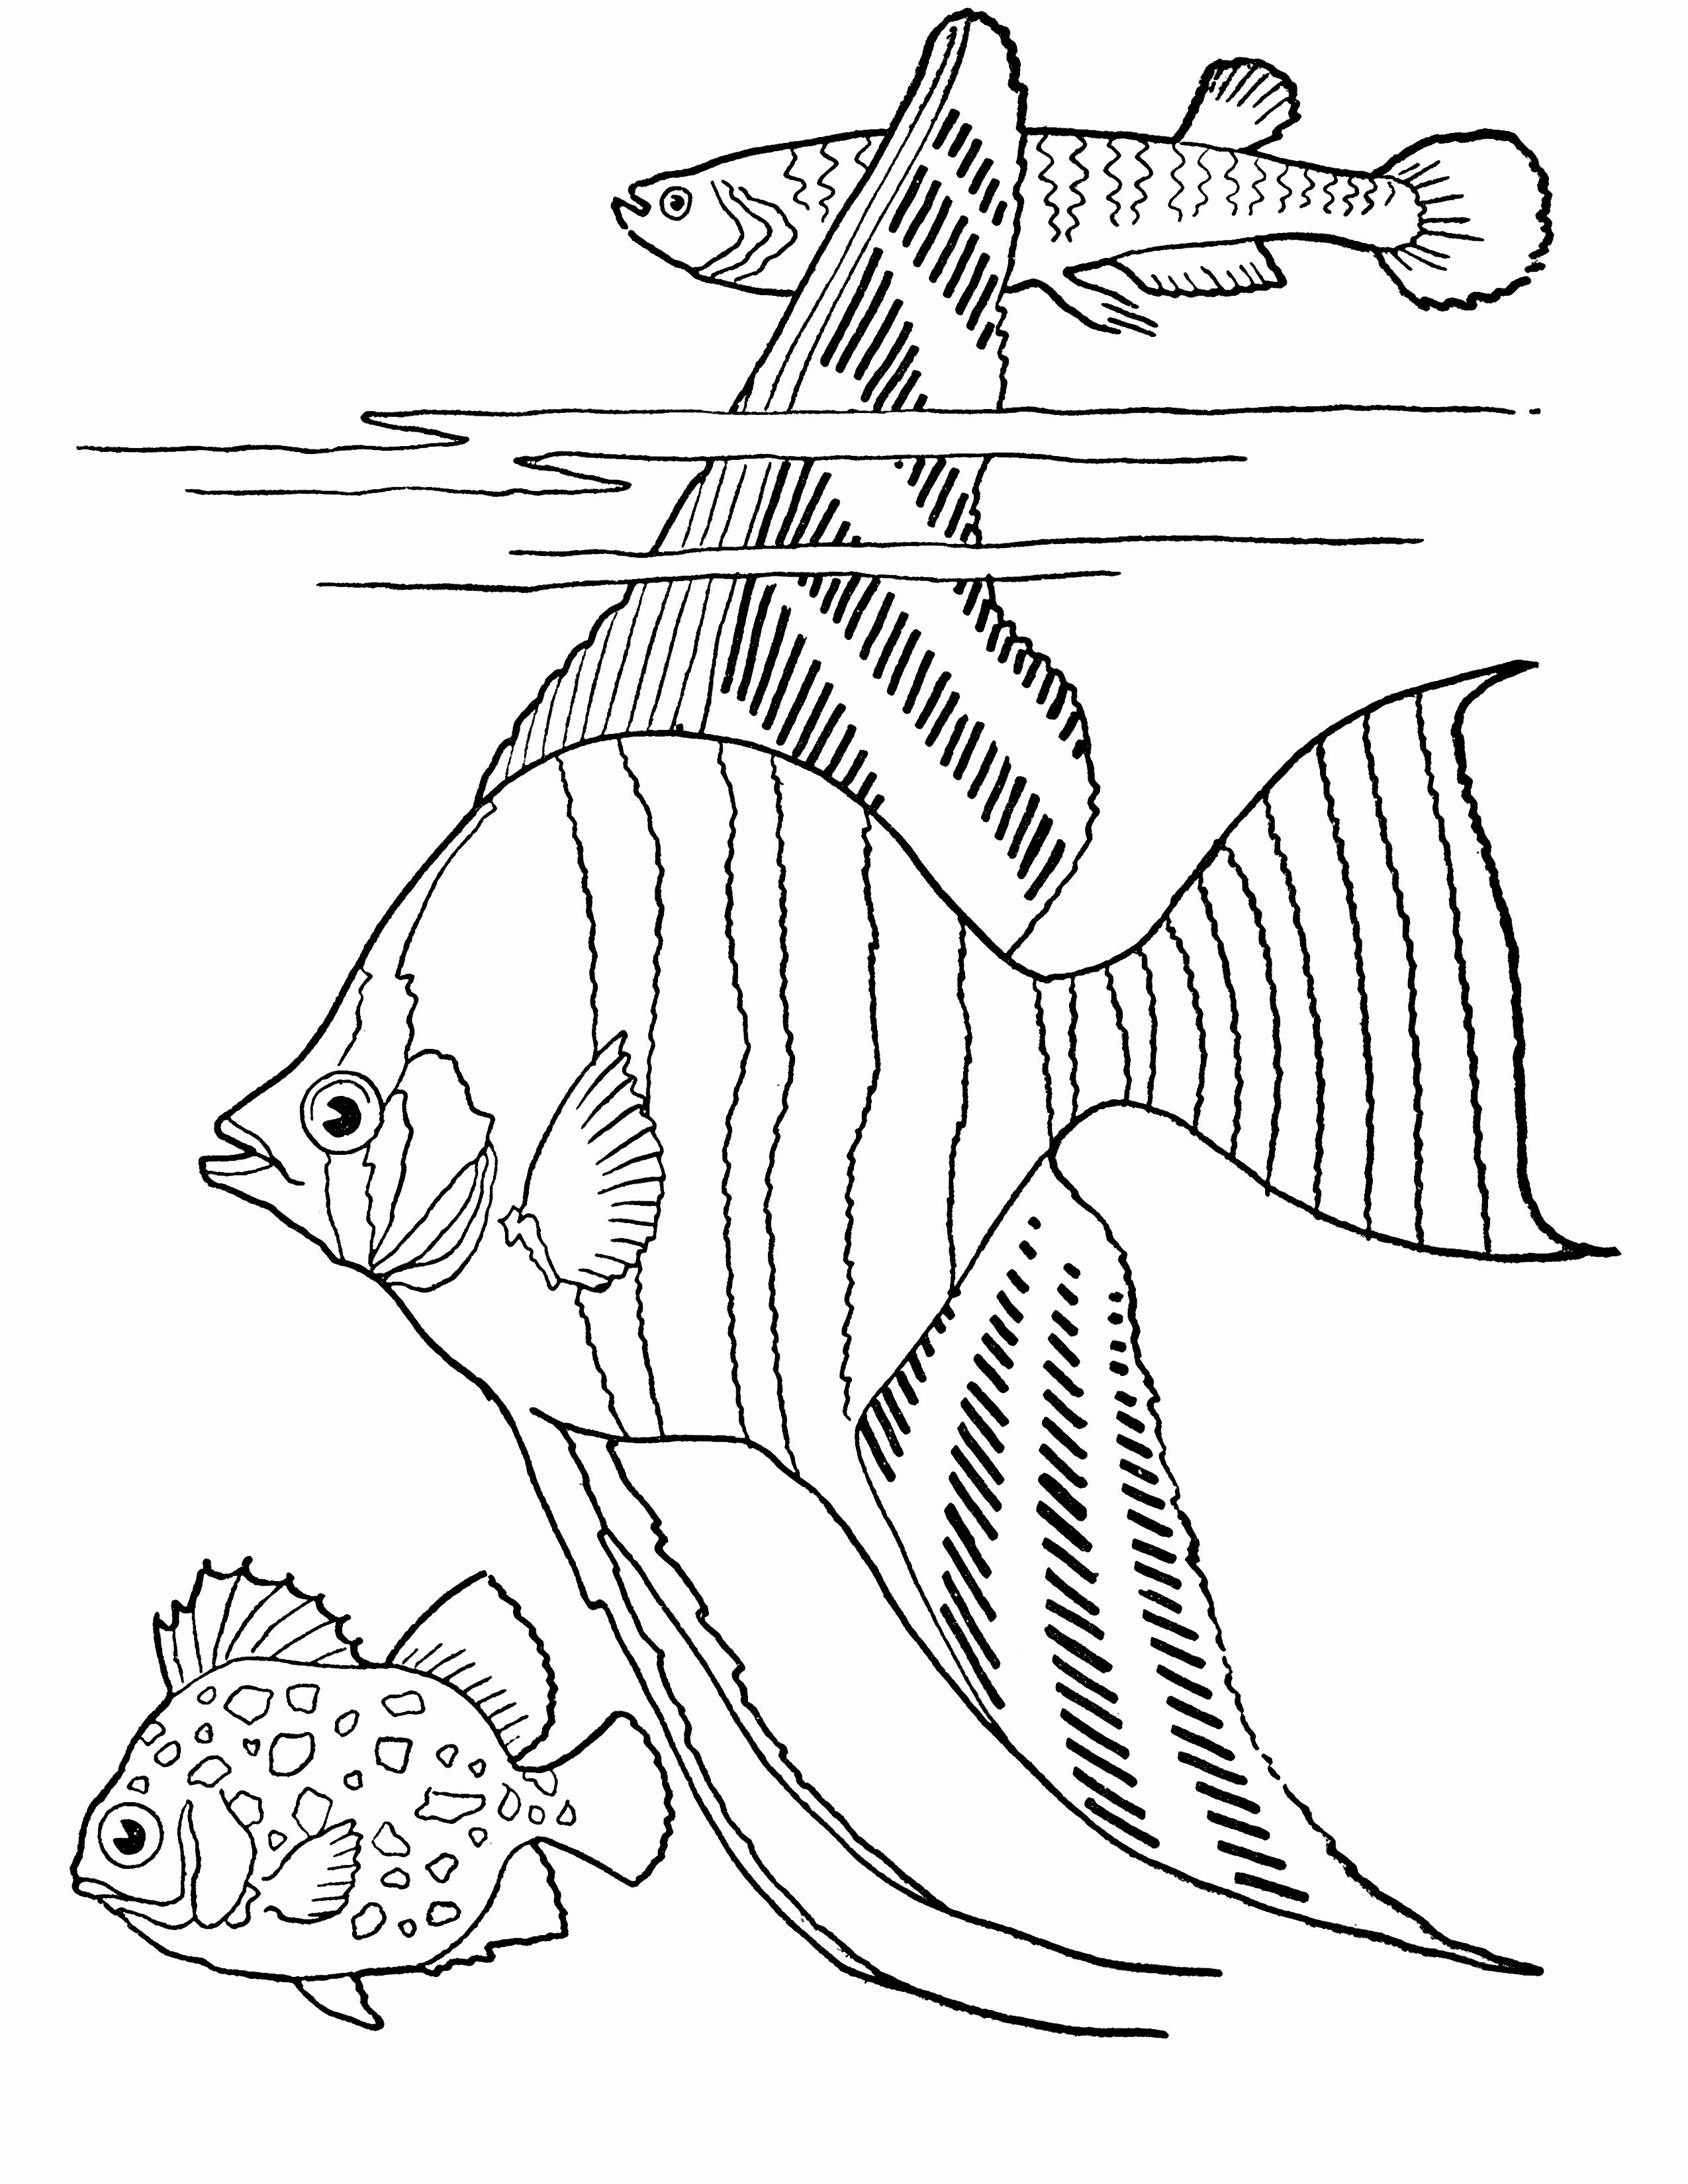 Printable Fish Colouring Pages Fresh Free Printable Adult Coloring Page Tropical Fish the